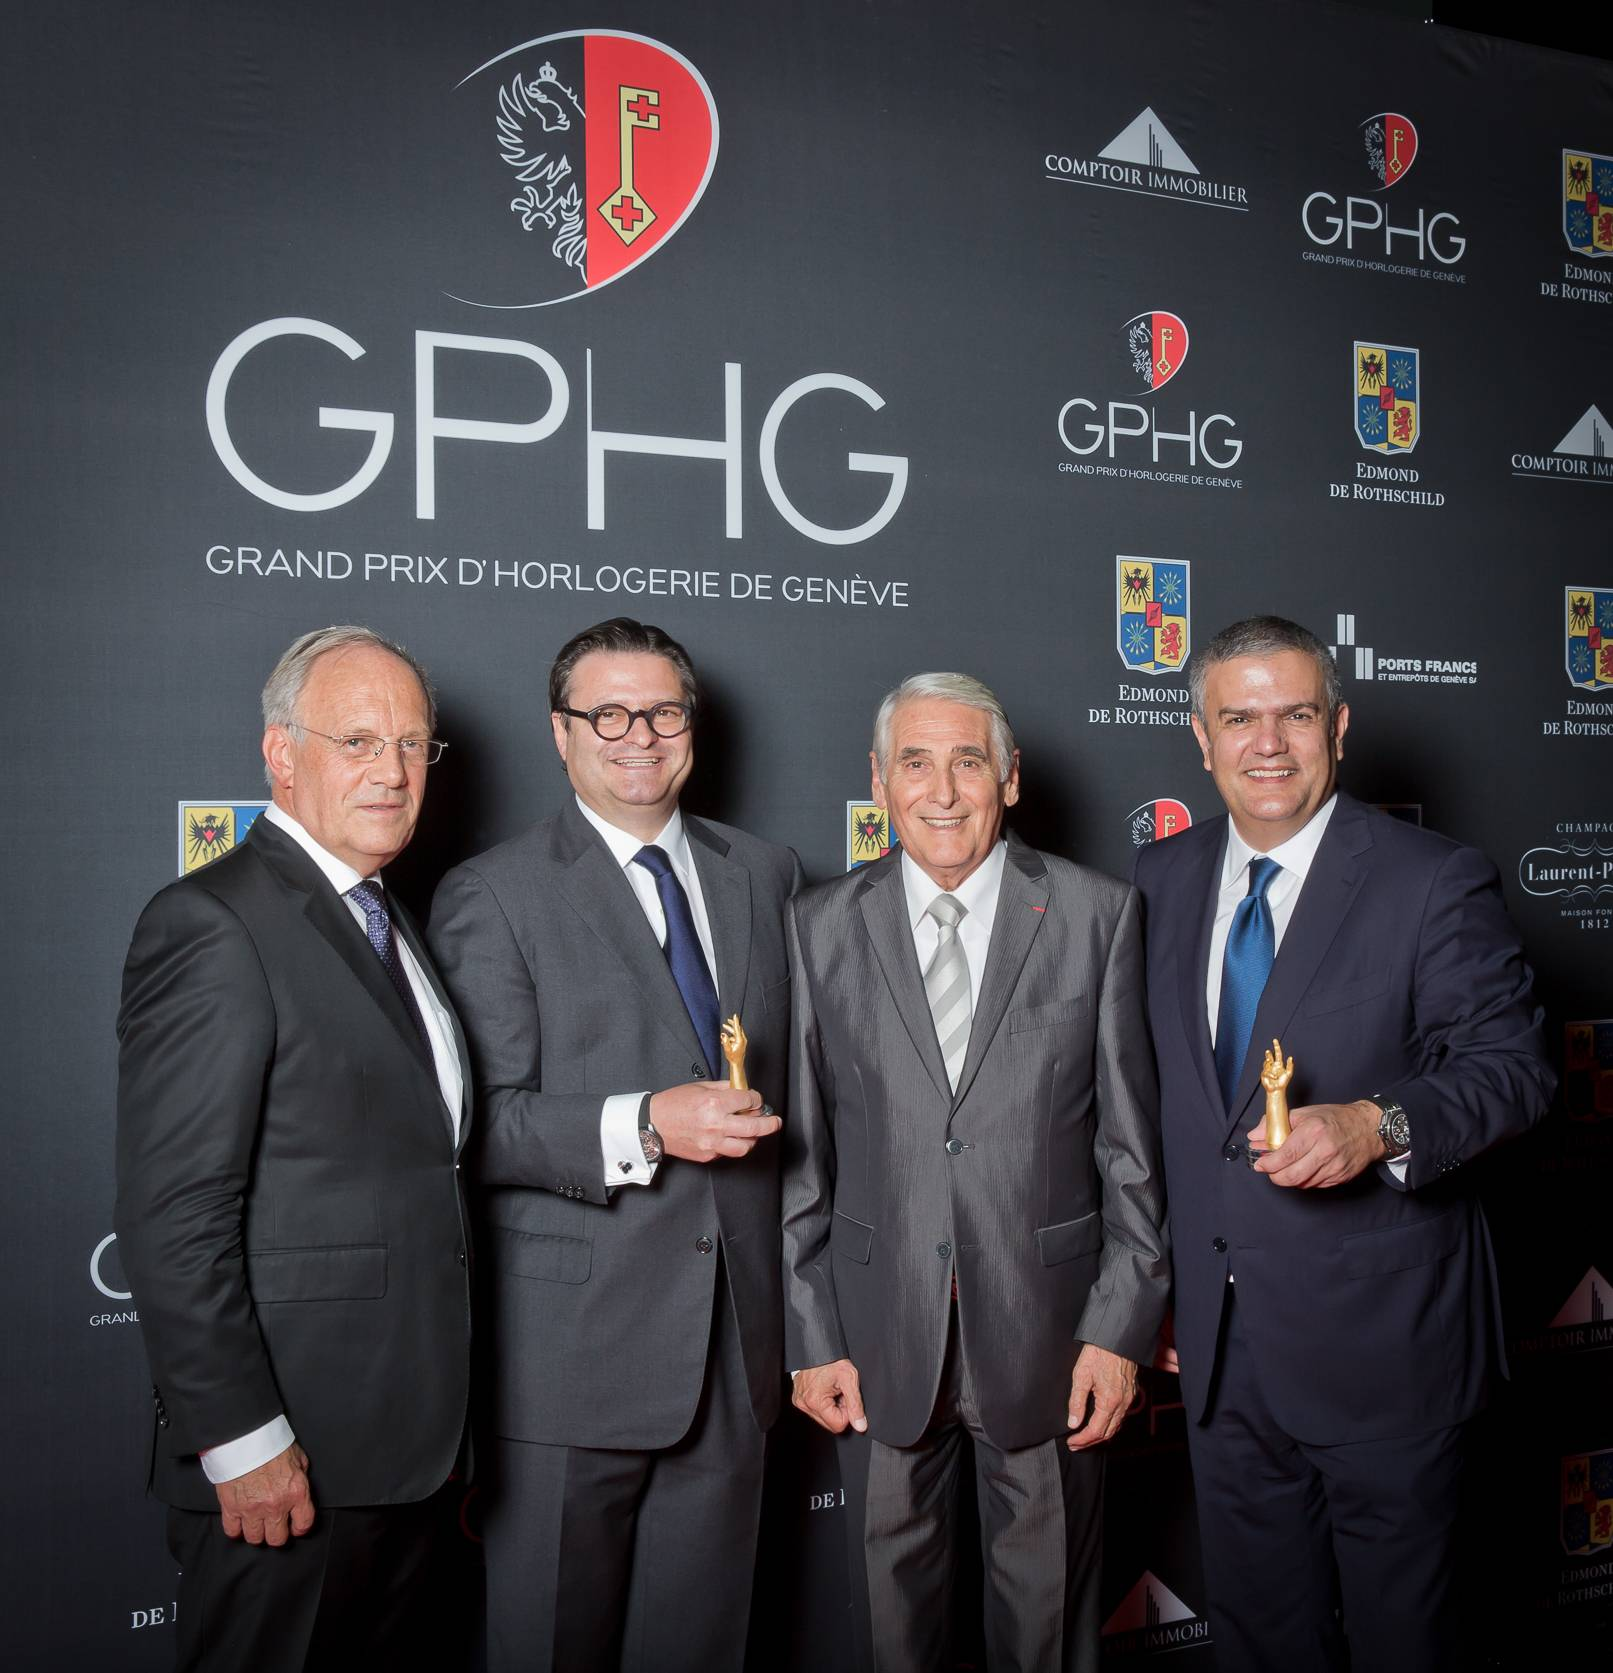 Johann Schneider-Ammann (Federal councillor), Aldo Magada (President & CEO of Zenith, winner of the Sports Watch Prize 2014), Carlo Lamprecht (President of the Foundation of the GPHG) and Ricardo Guadalupe (CEO of Hublot, winner of the Striking Watch Prize 2014)